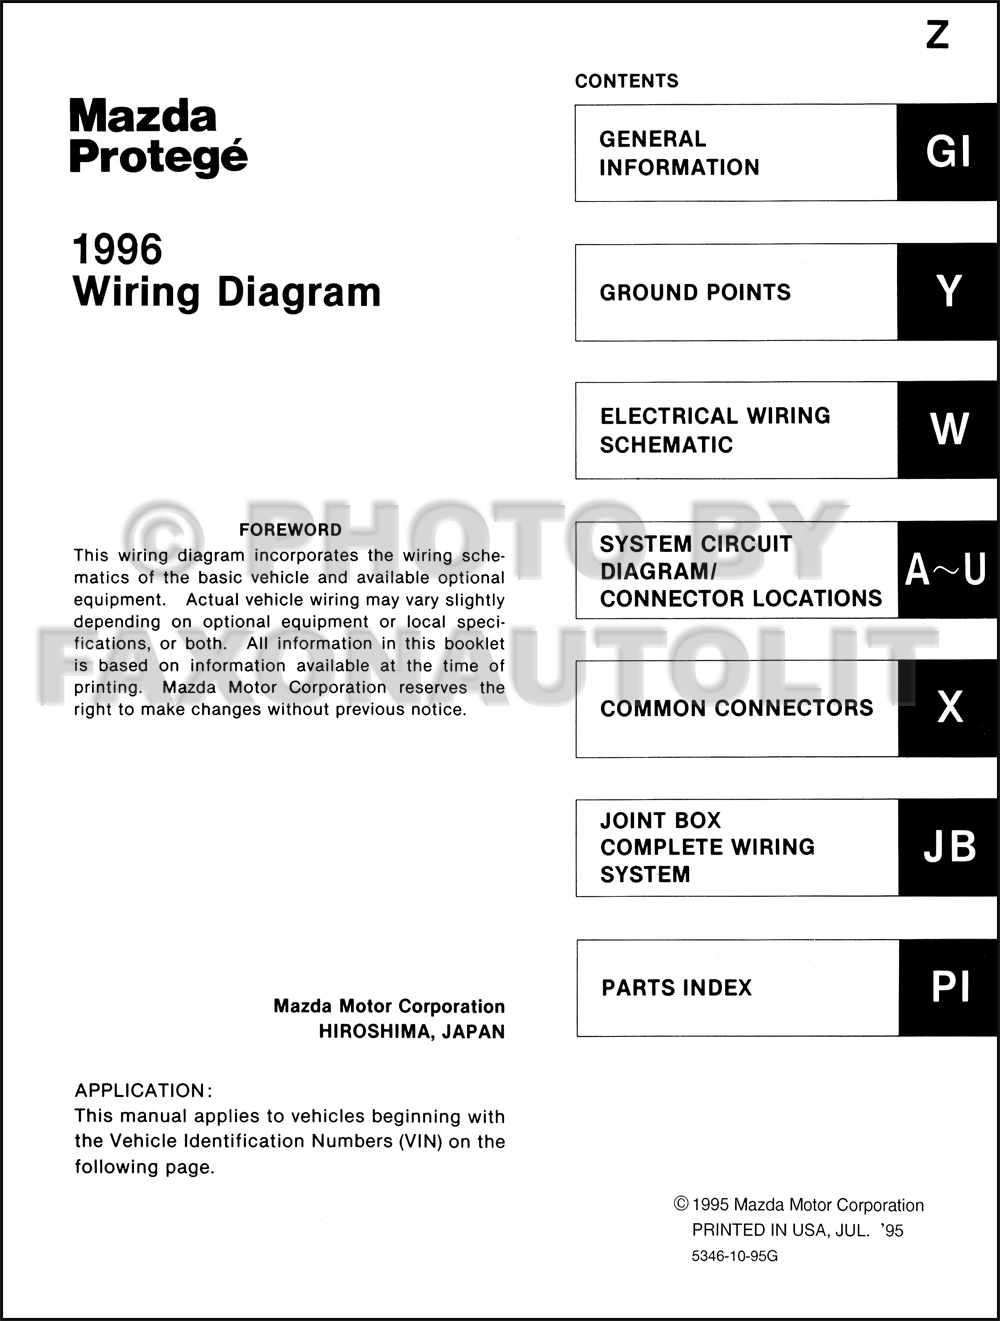 2001 mazda protege radio wiring diagram mazda protege headlight wiring 1996 mazda protege wiring diagram manual original